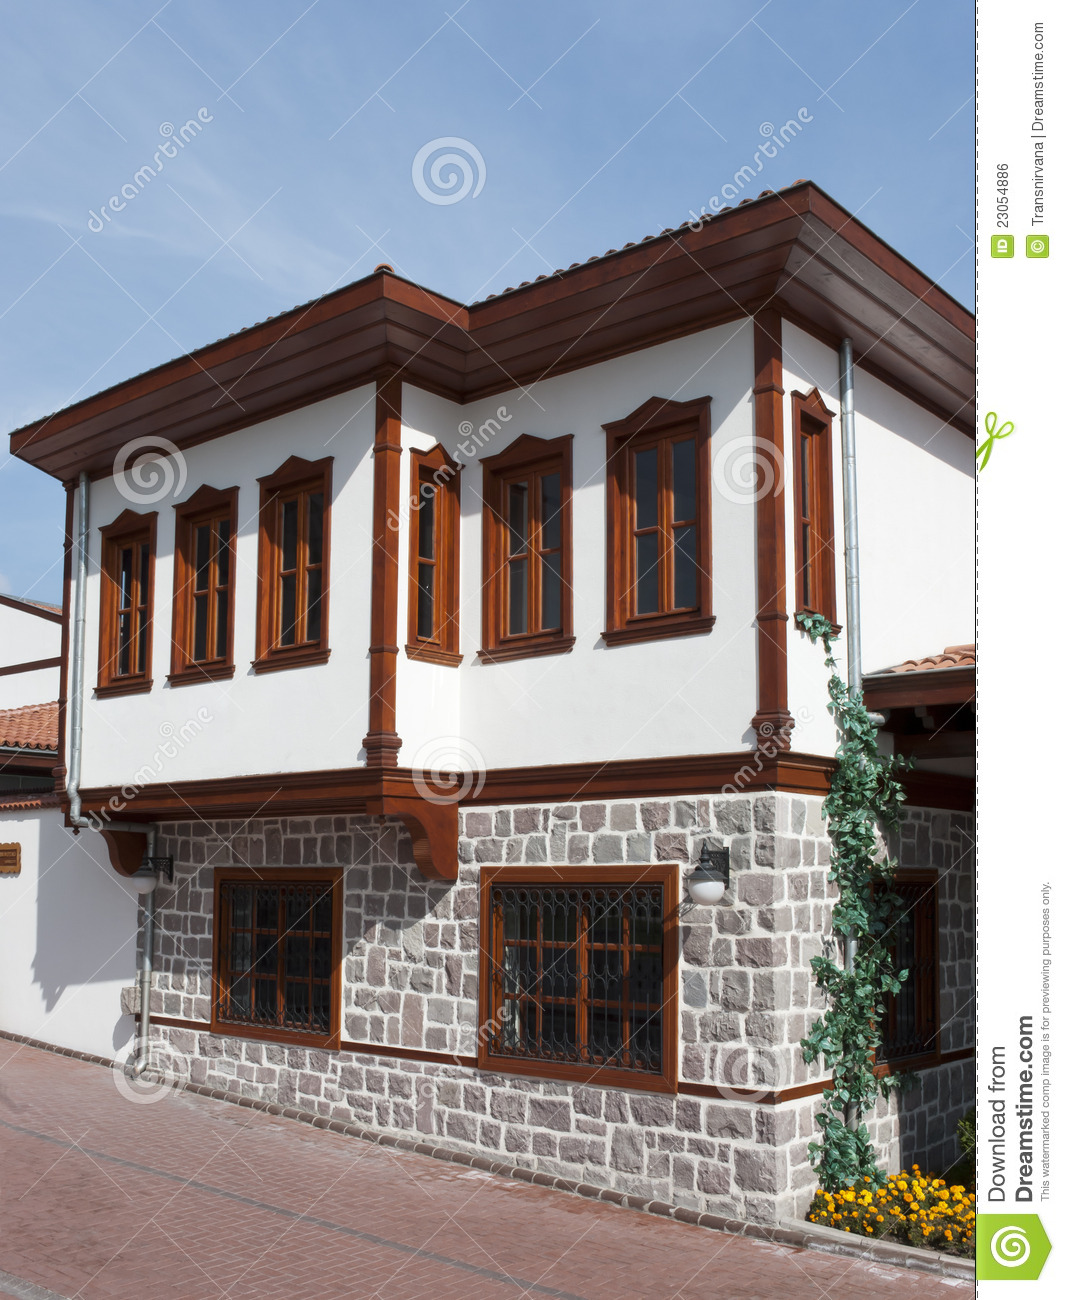 Traditional turkish house stock photo image of anatolia for Maison traditionnelle turque